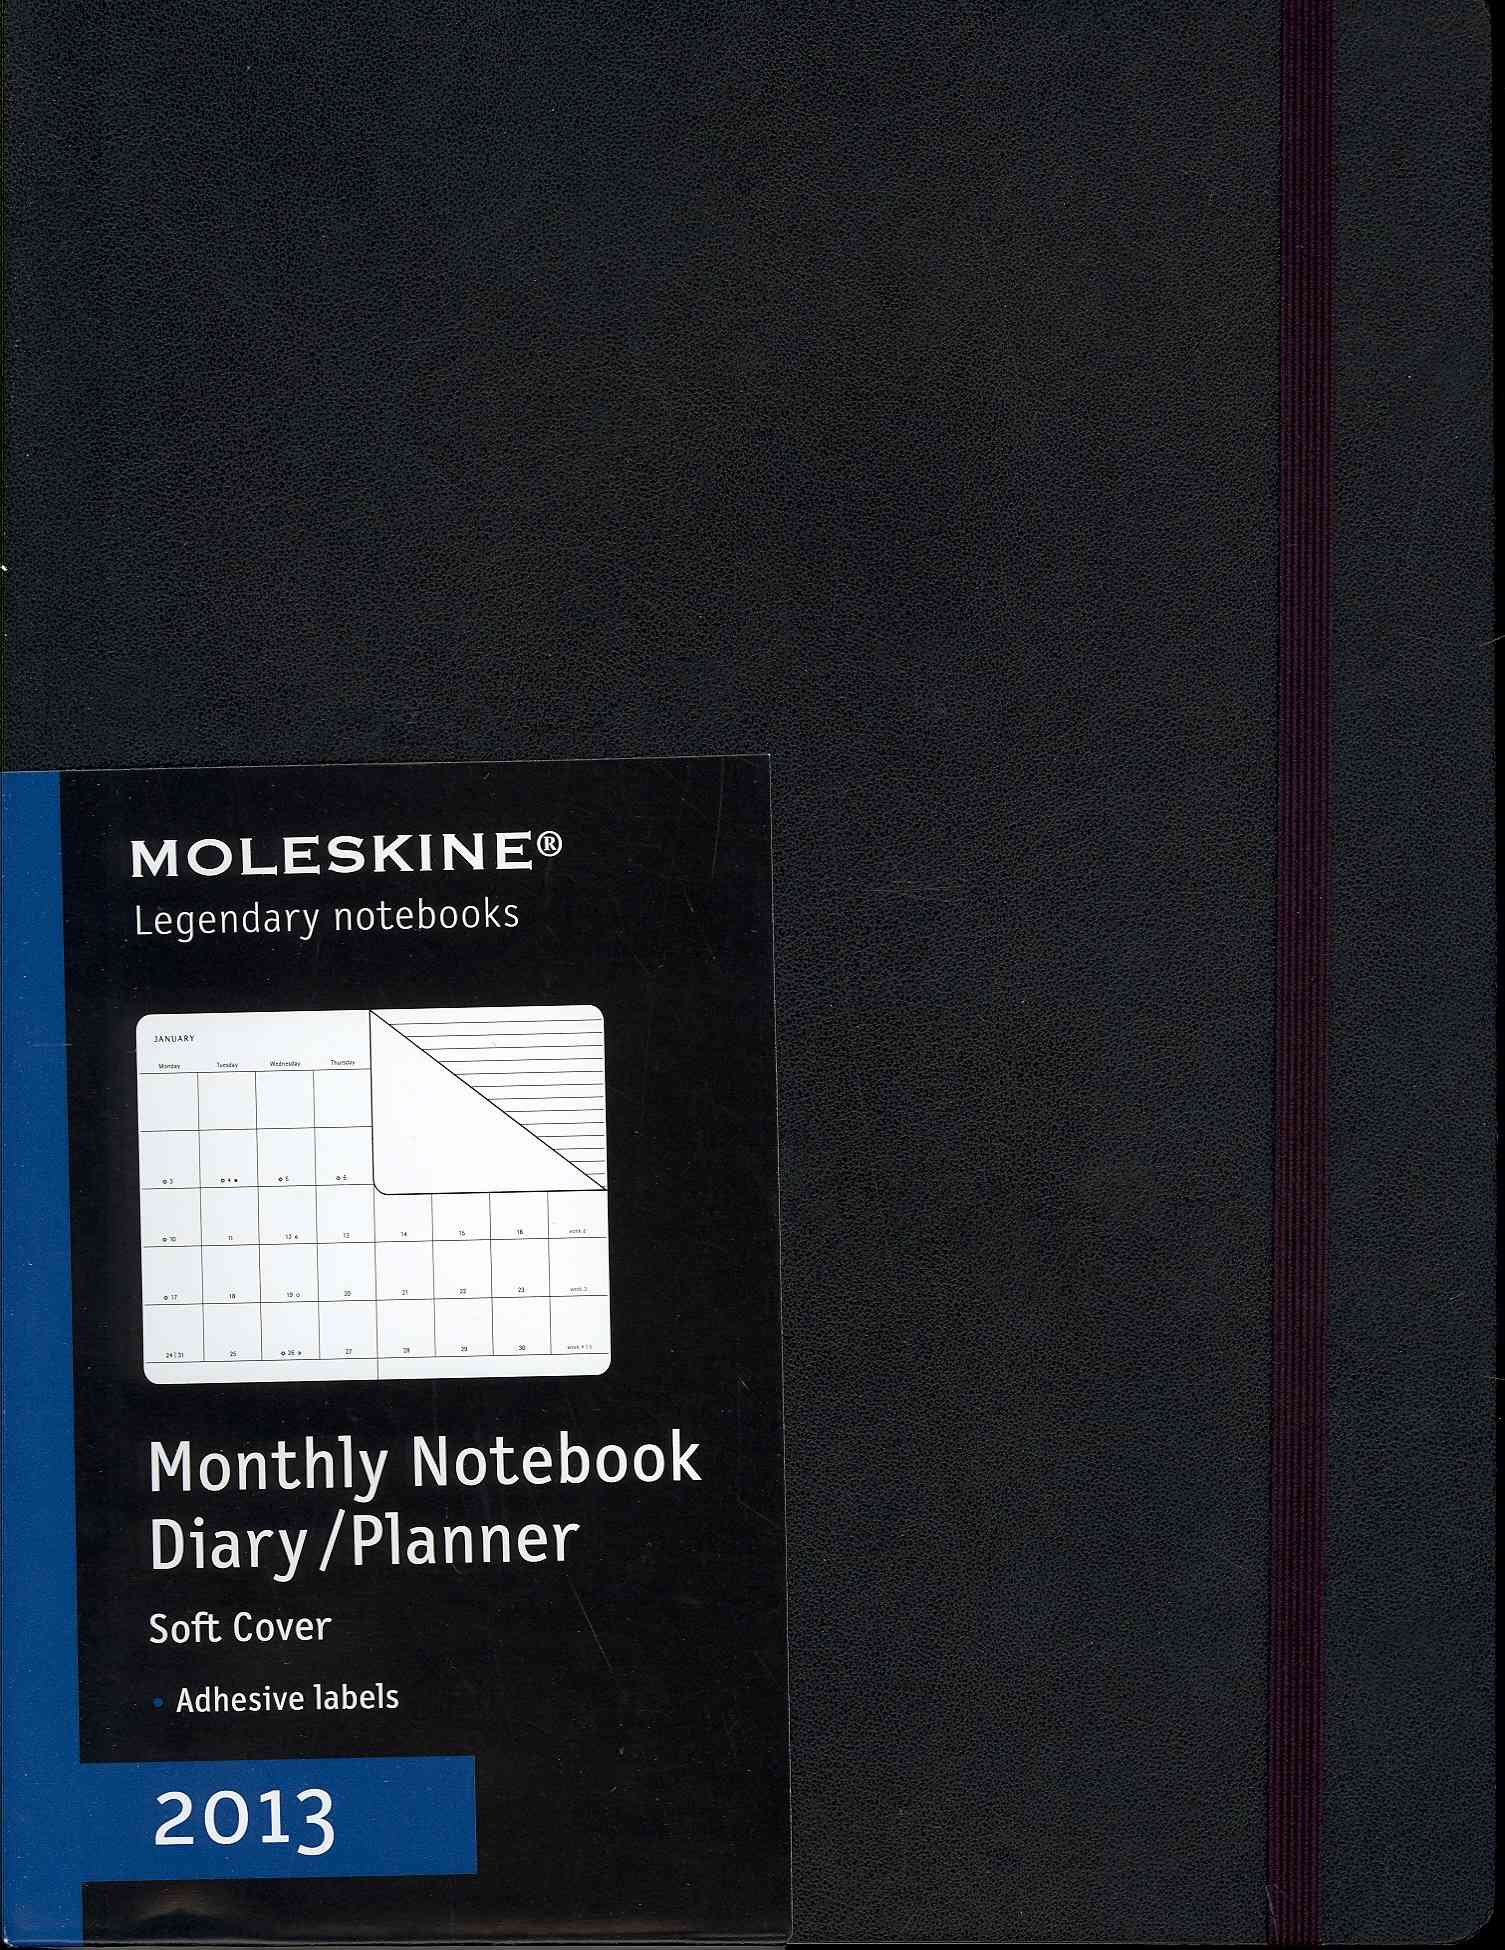 Moleskine Monthly Notebook Diary / Planner 2013